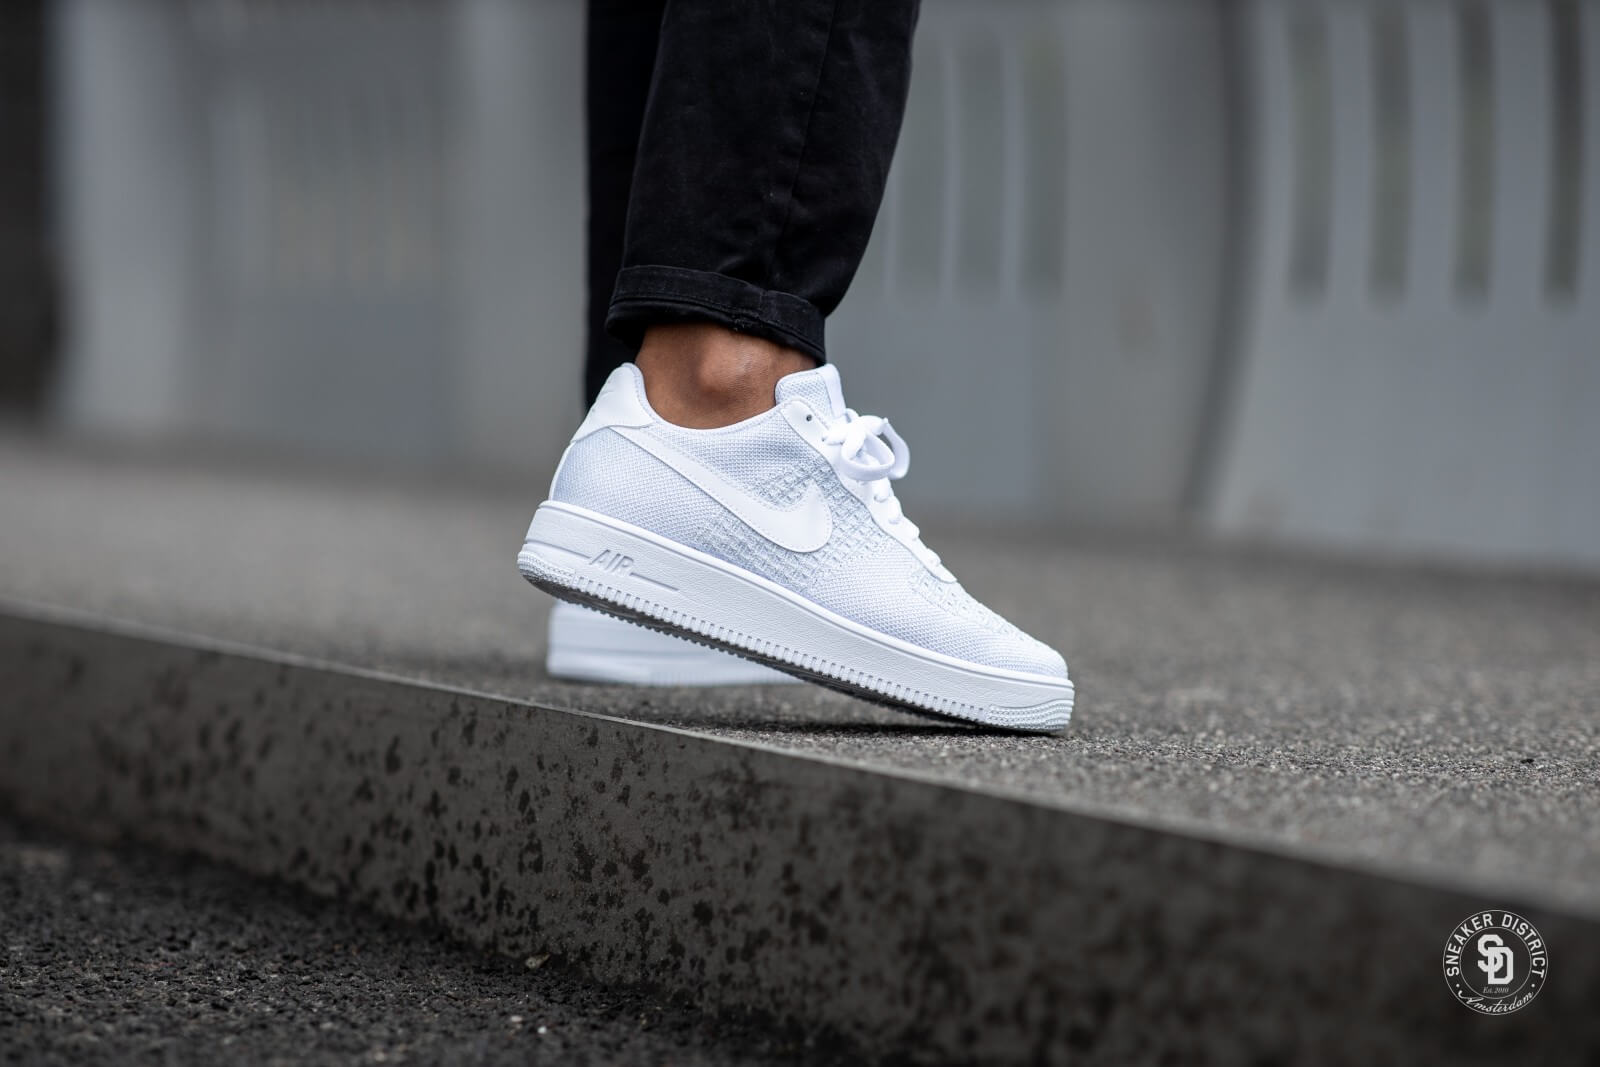 Nike Air Force 1 Flyknit 2.0 WhitePure Platinum AV3042 100